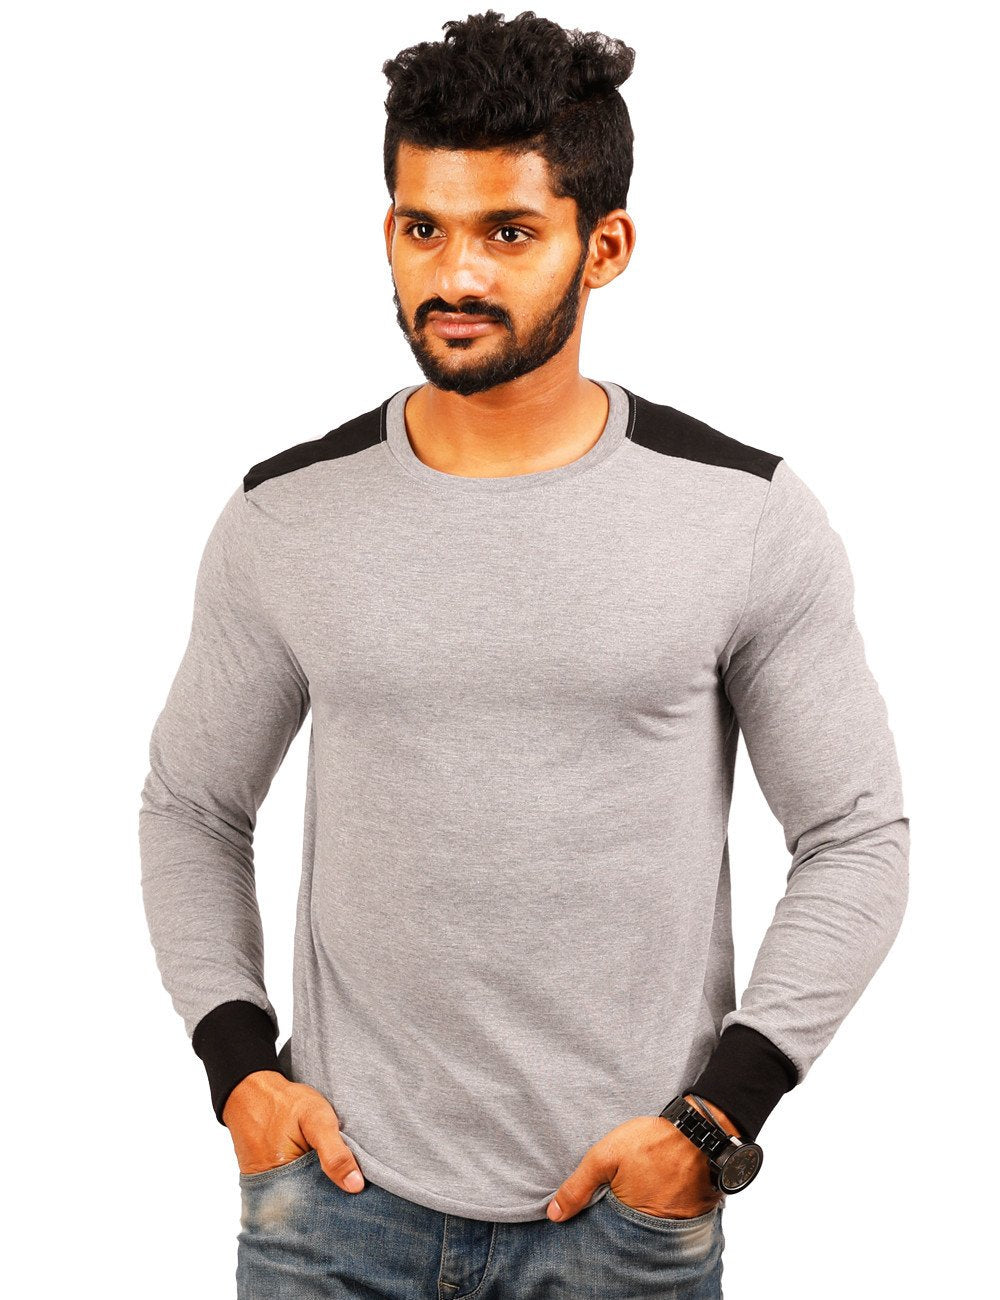 Grey Round Necks T-Shirt - PLAIN - SHOULDER